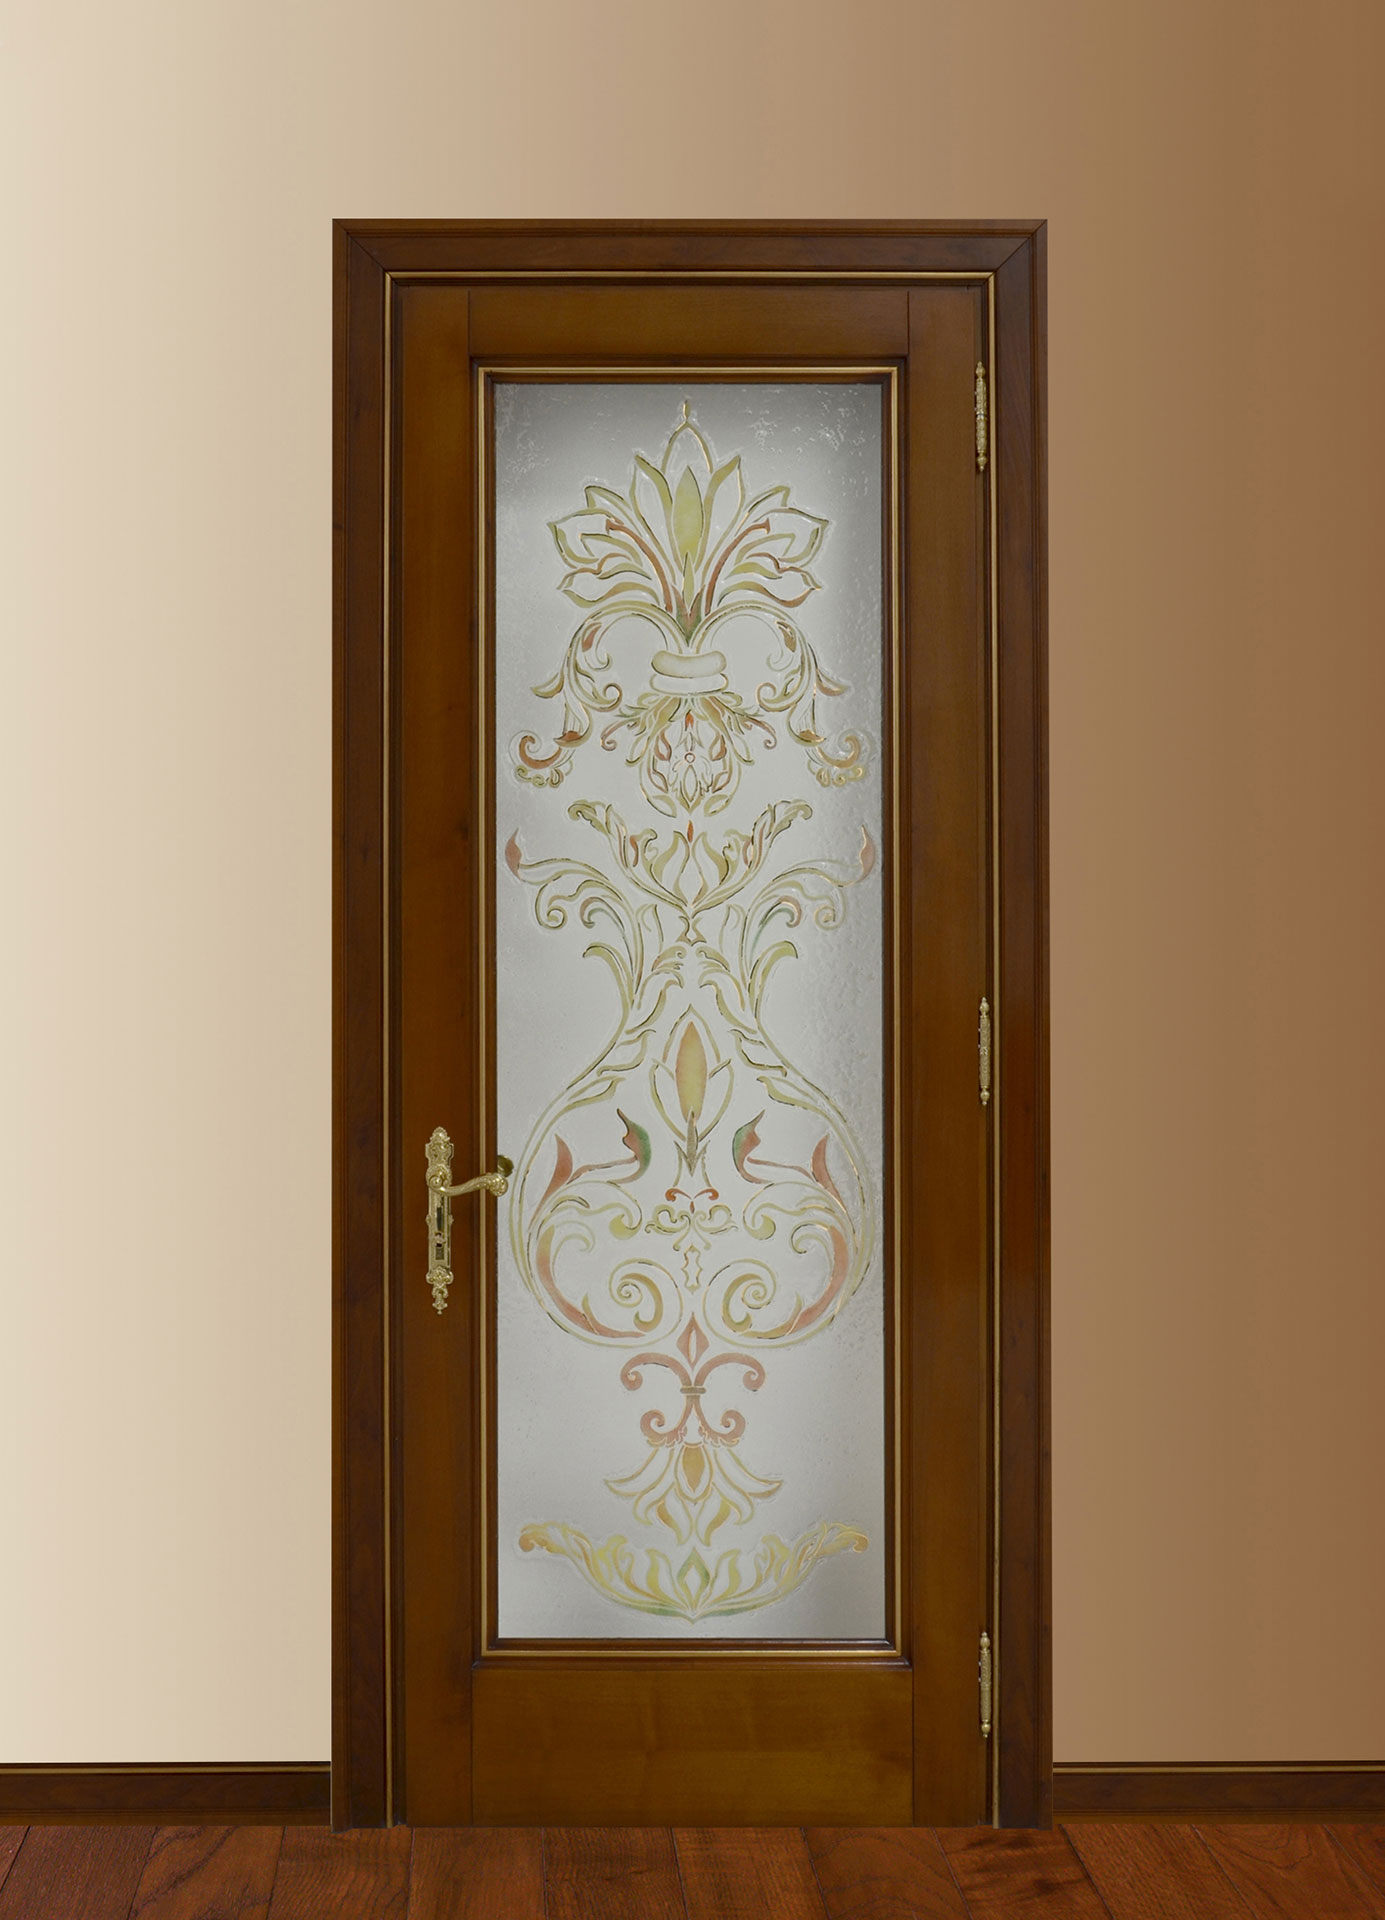 Faoma interior wooden door with decorated glass